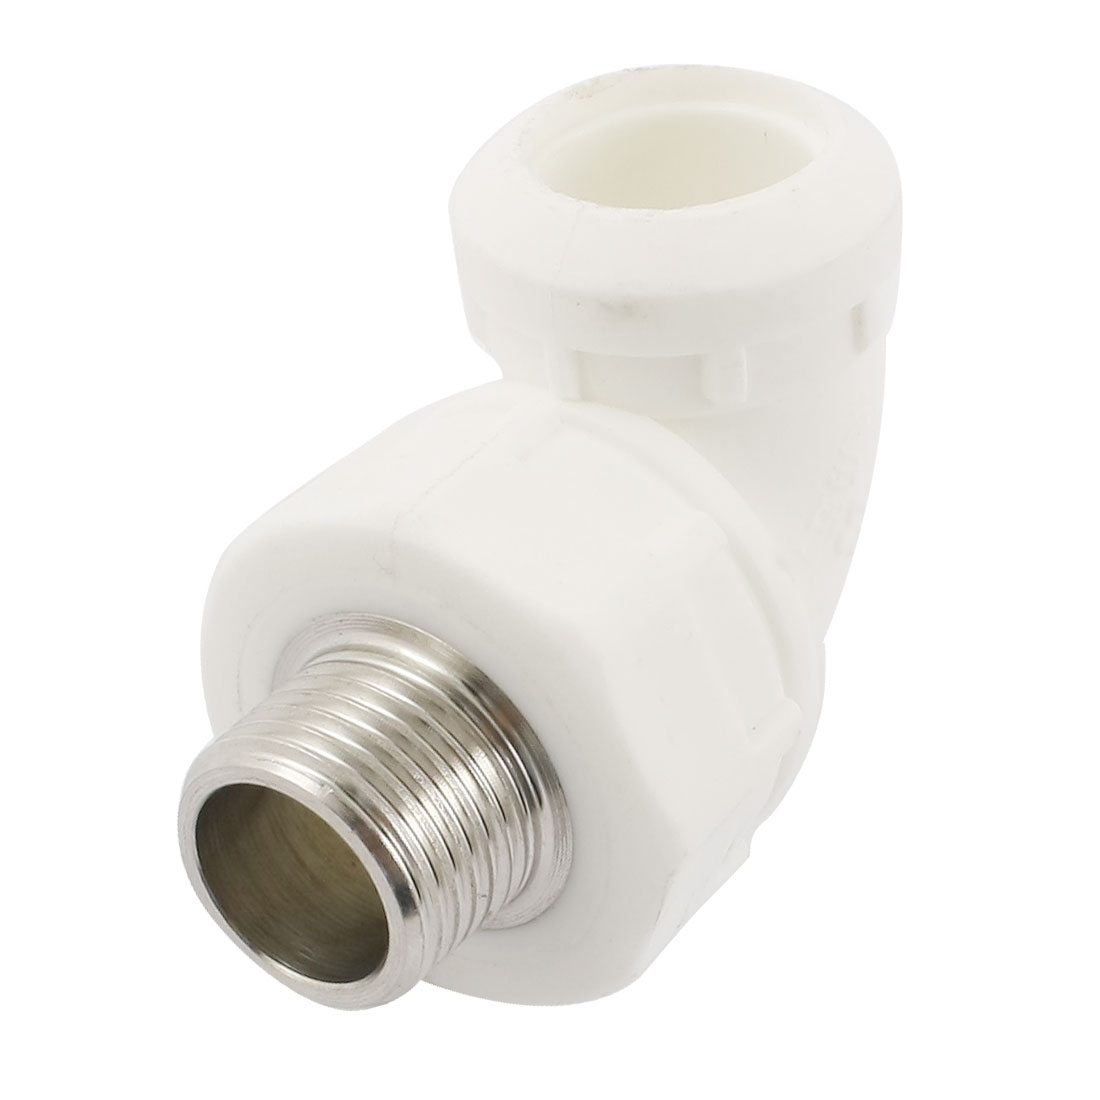 Water Hose Pipe Tube 90 Degree Fitting Connector 20mm to 1/2PT Male Thread